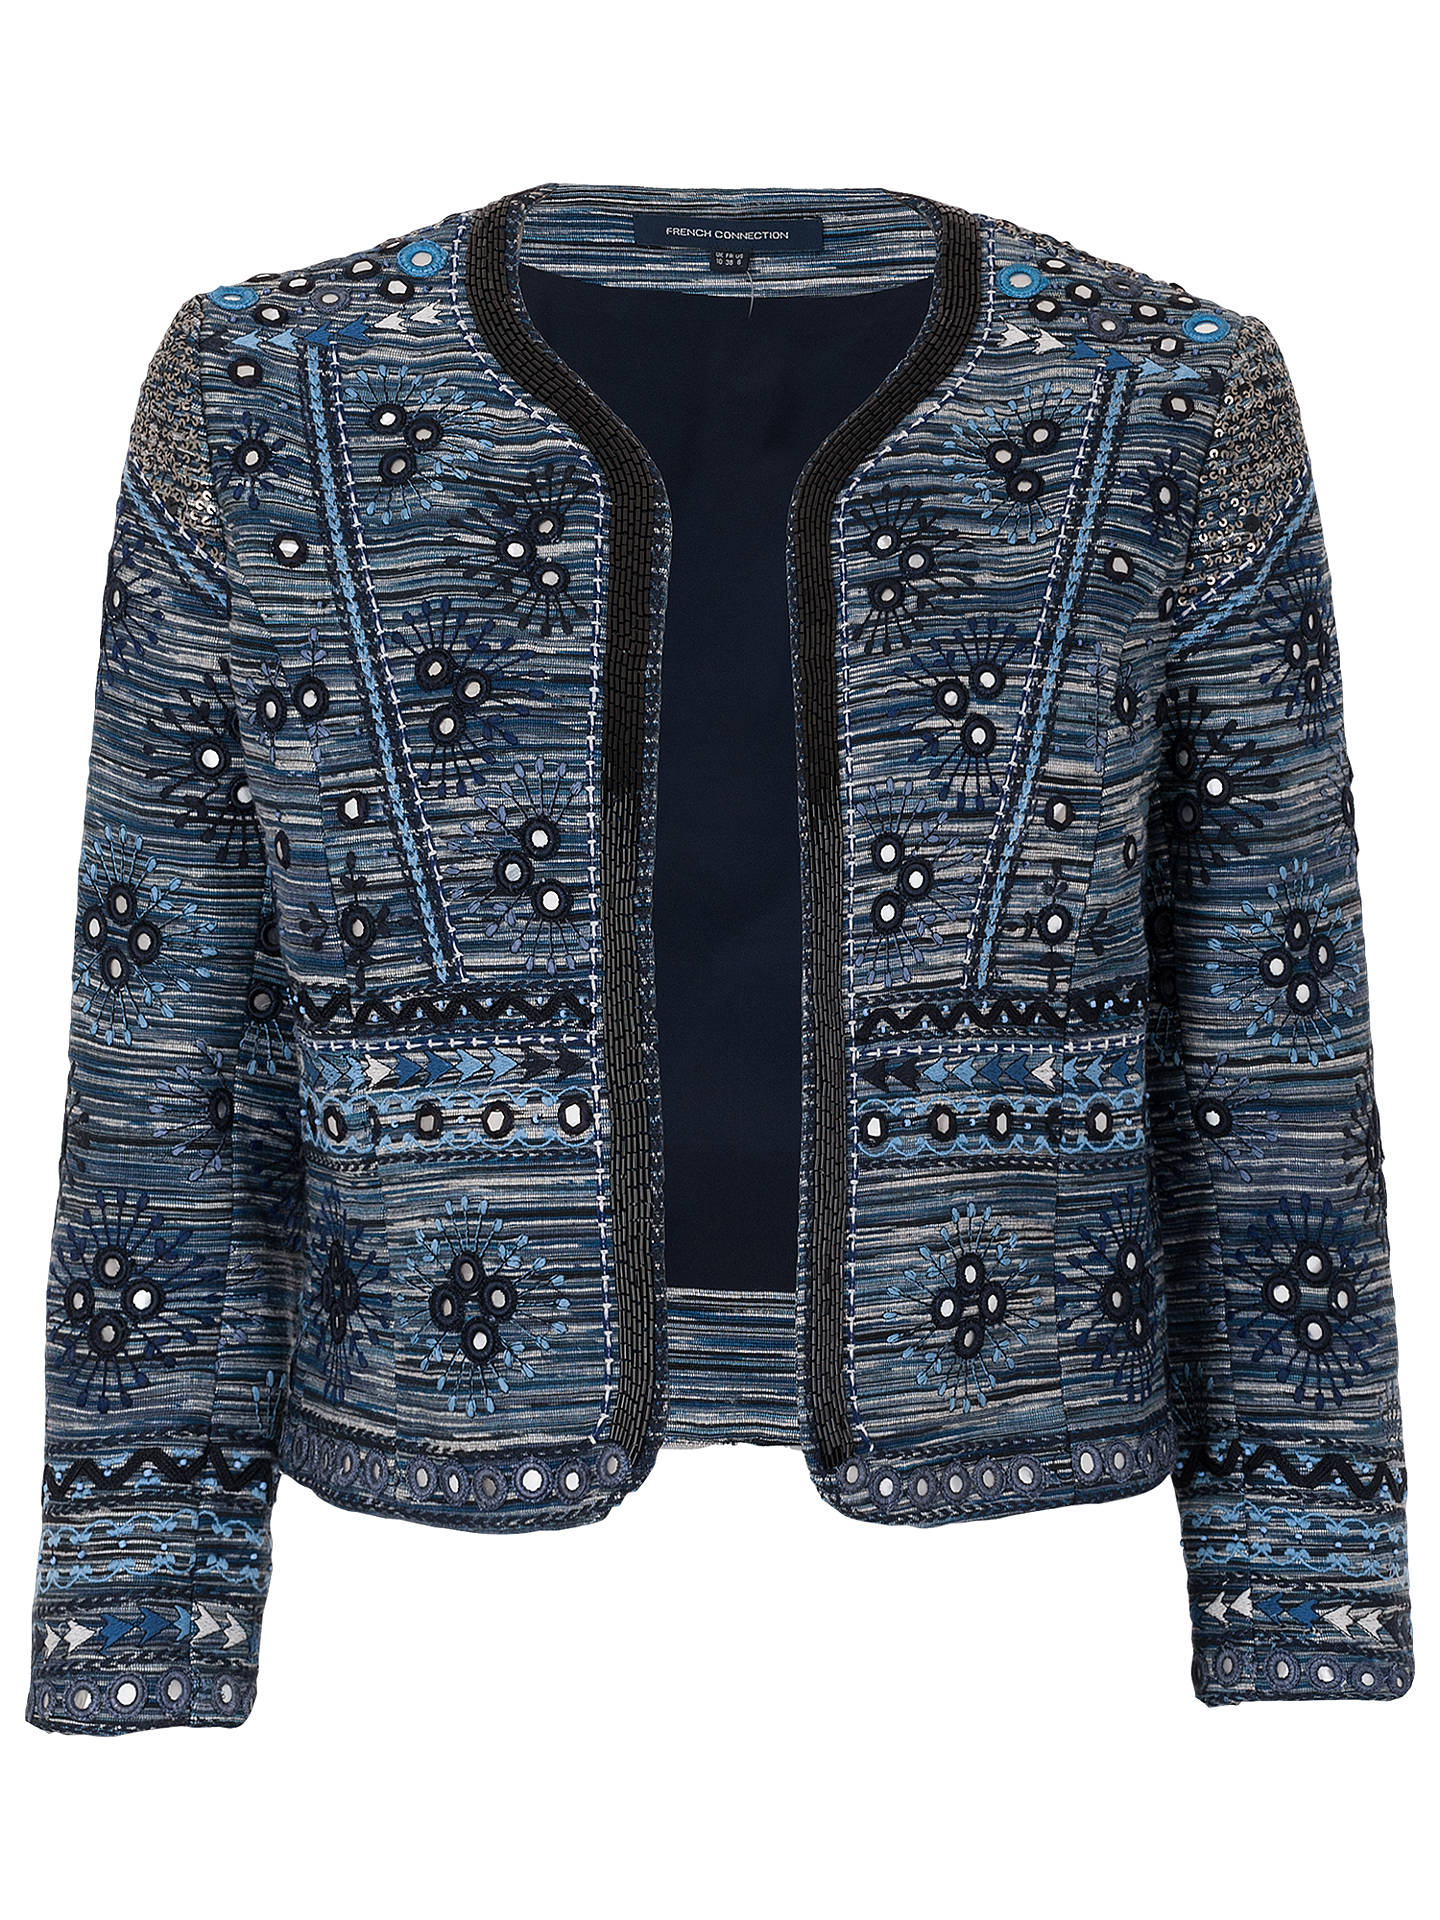 BuyFrench Connection Palm Valley Embellished Jacket, Blue, 6 Online at johnlewis.com